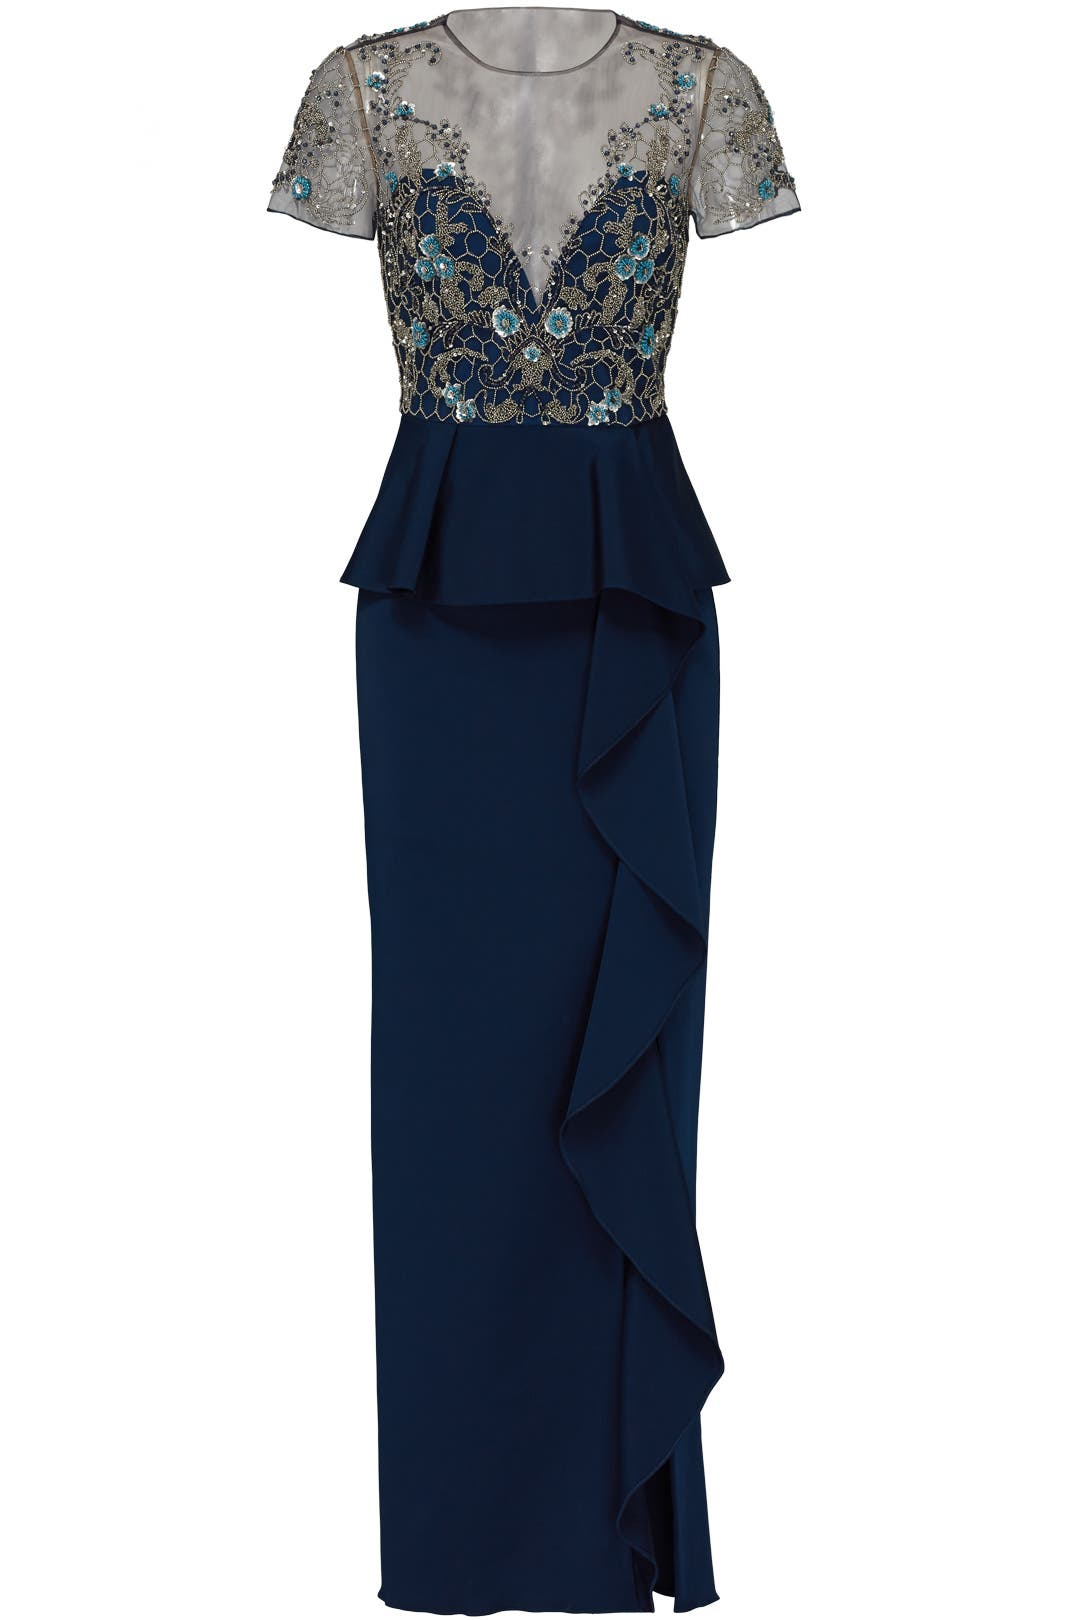 Navy Lace Ruffle Gown by Marchesa Notte for $180 | Rent the Runway